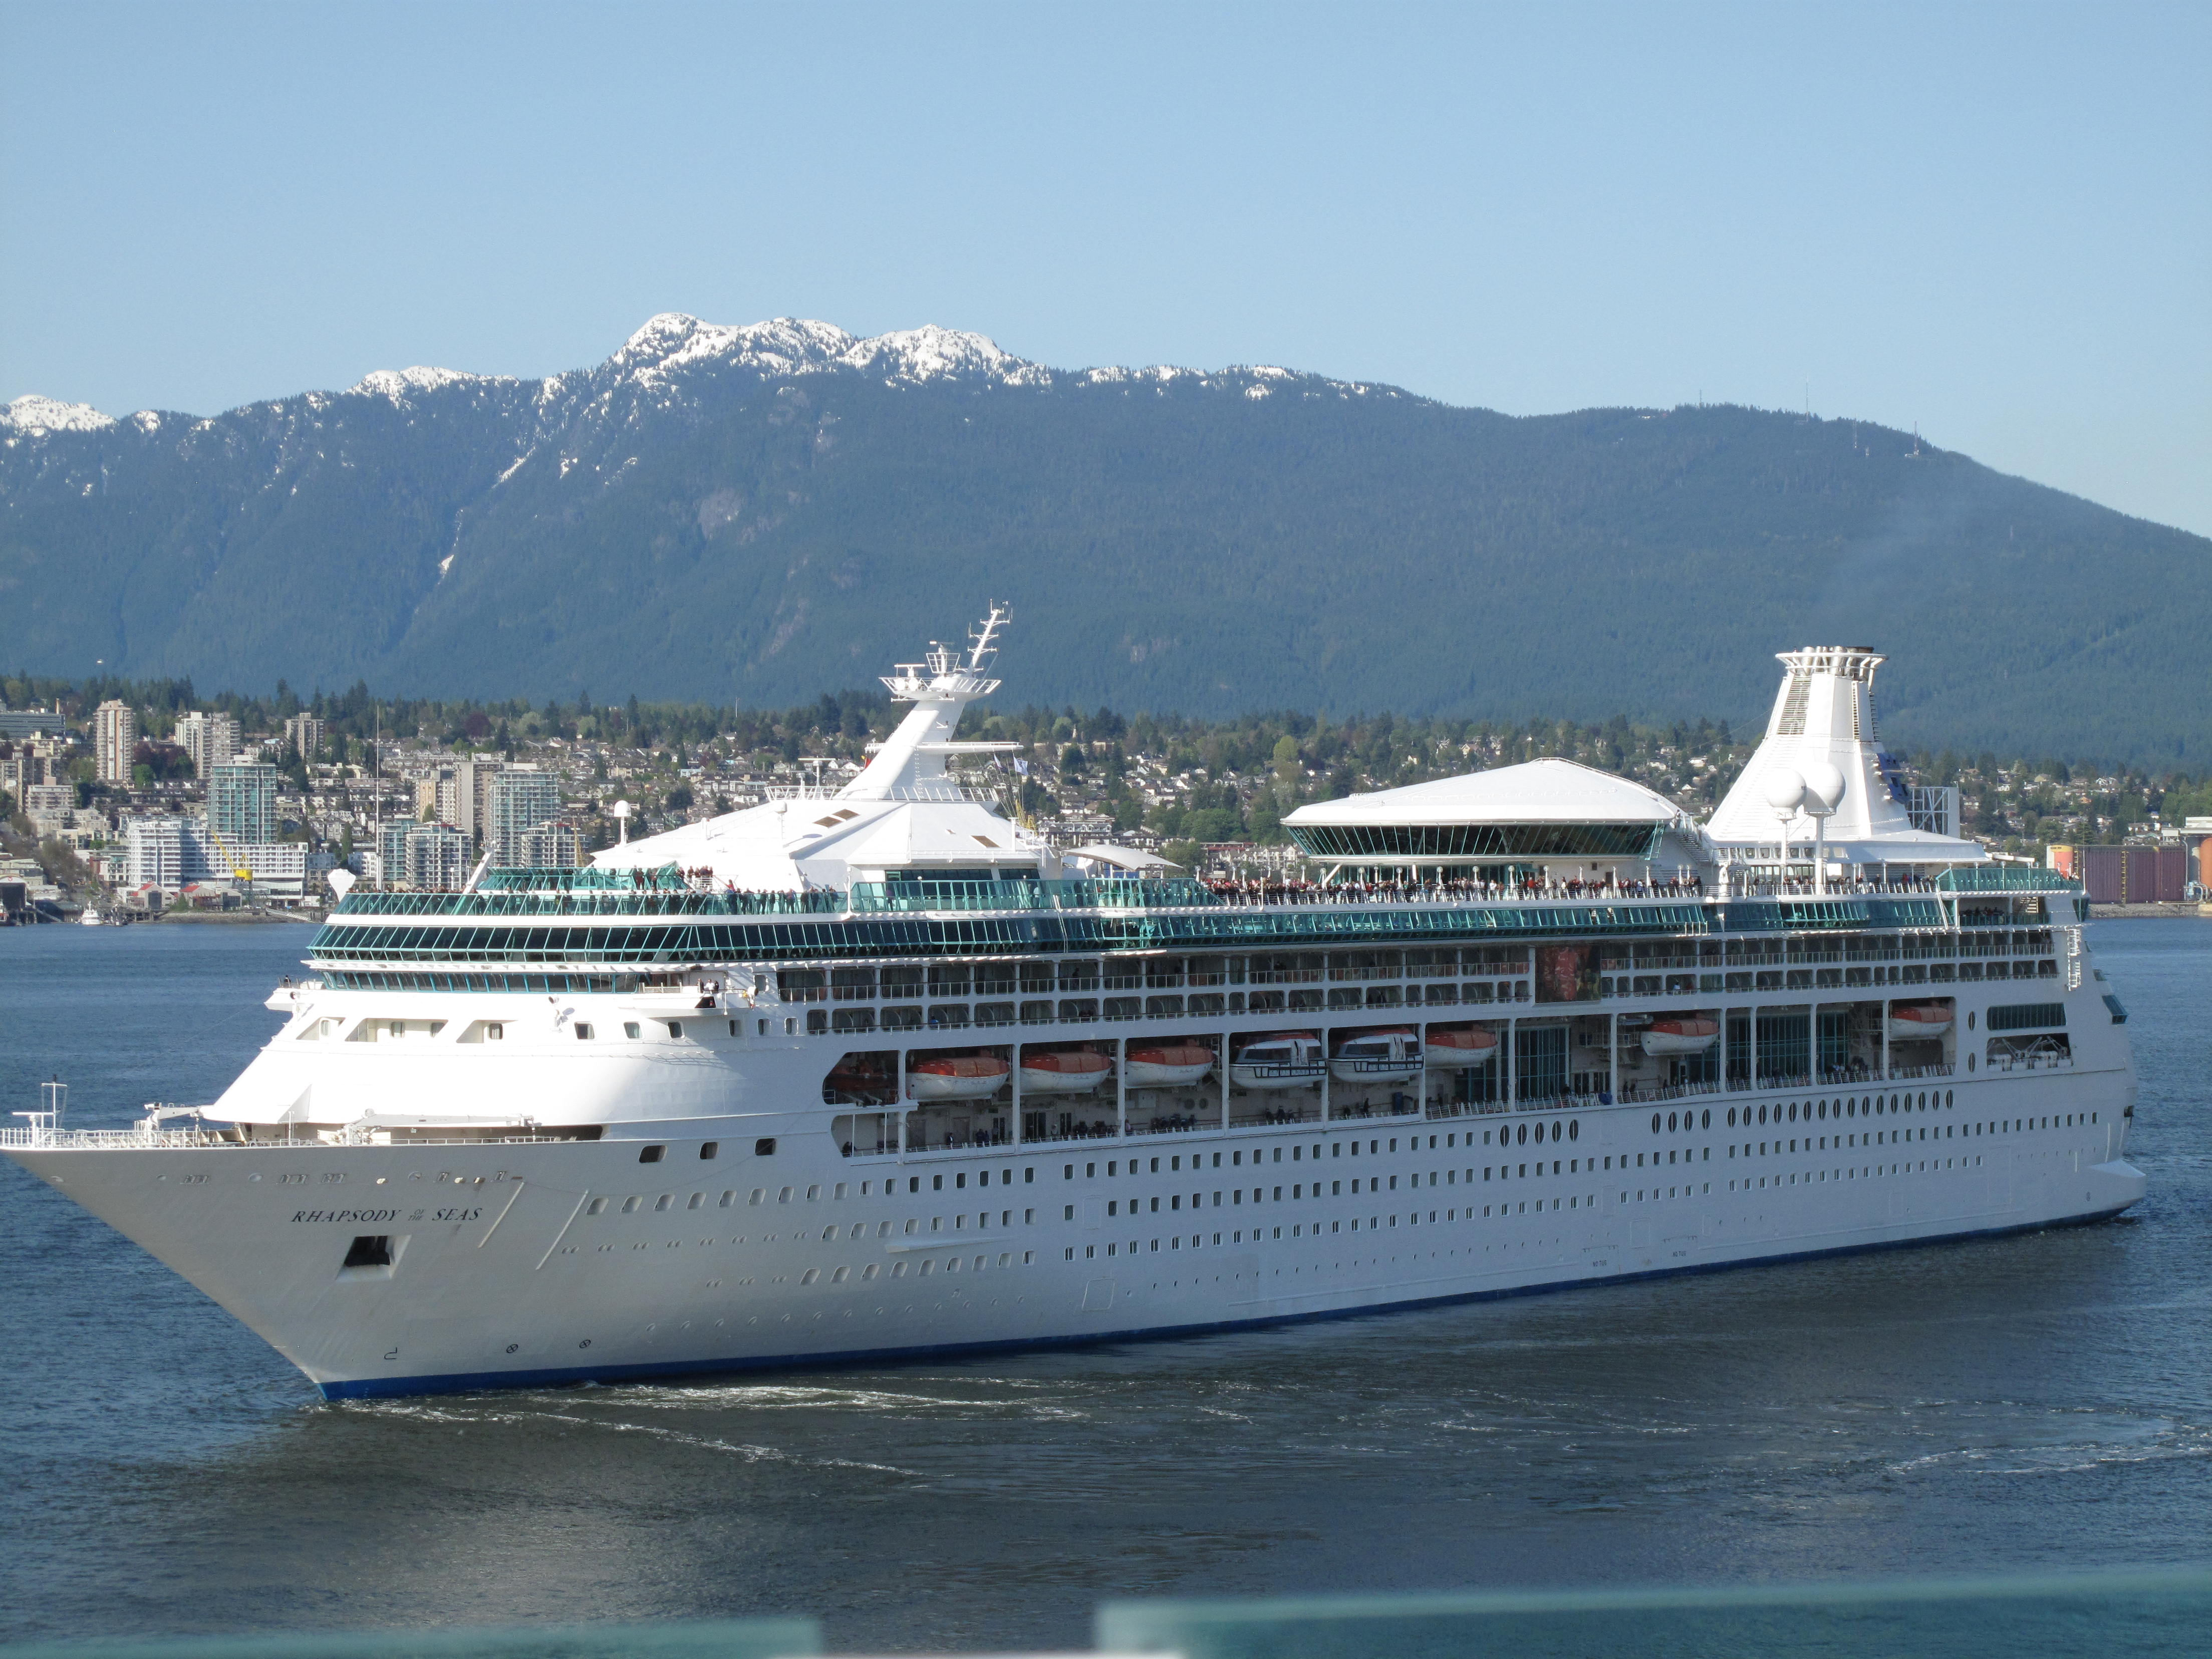 View of vancouver and the rhapsody of the seas from the radiance of